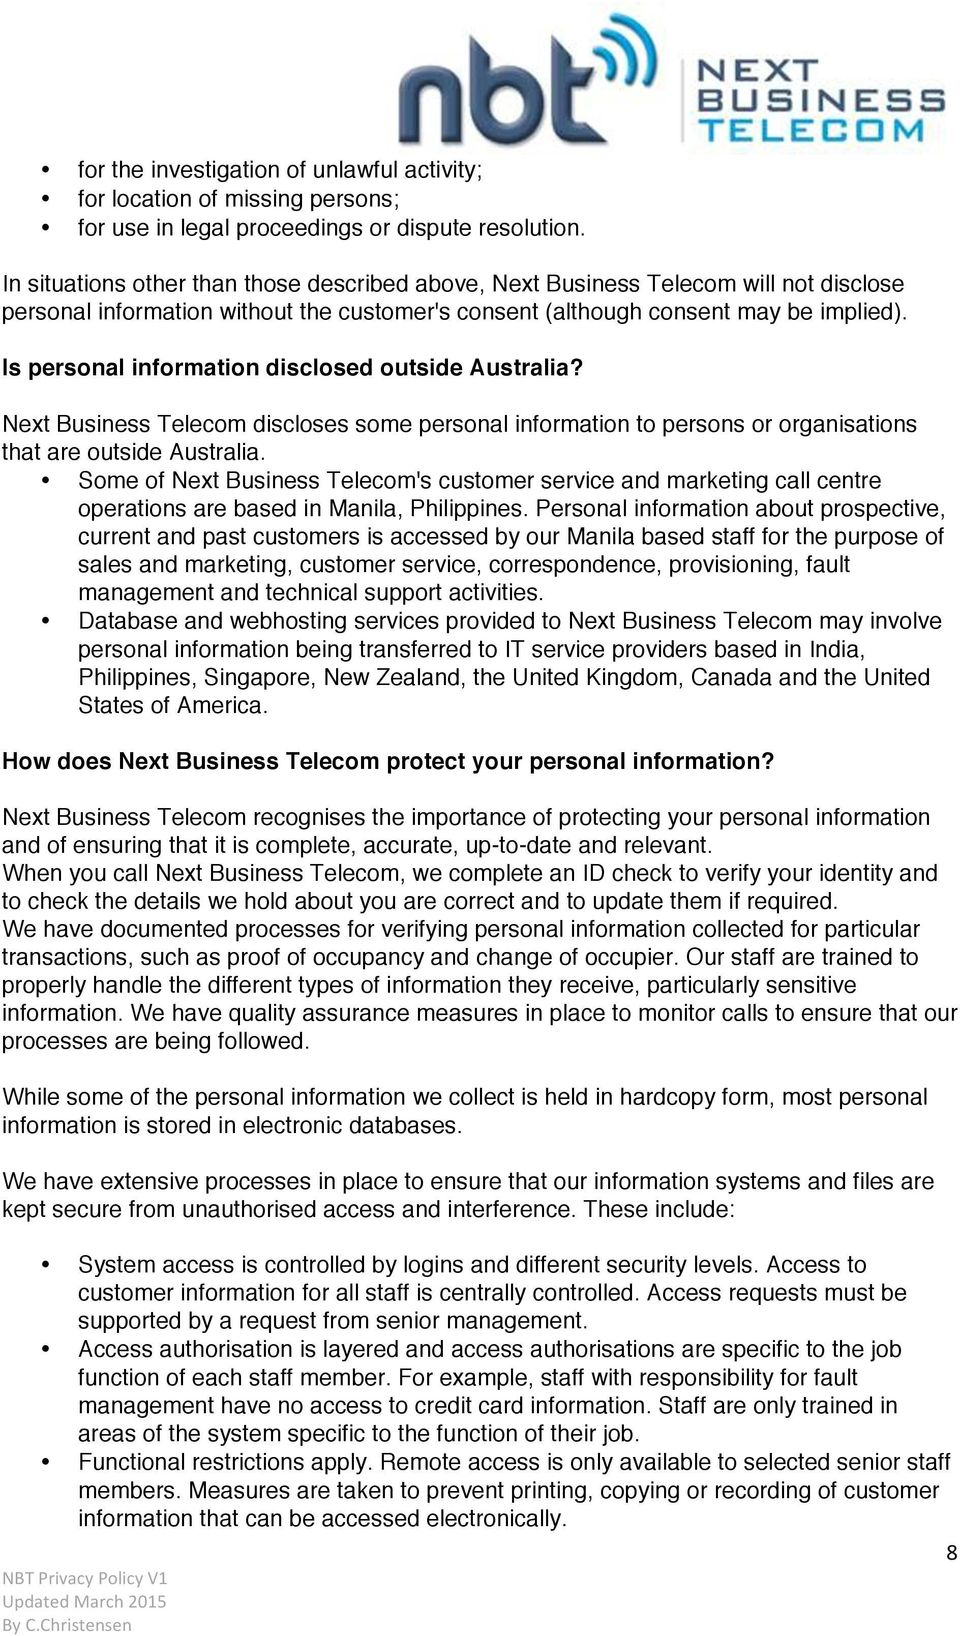 Is personal information disclosed outside Australia? Next Business Telecom discloses some personal information to persons or organisations that are outside Australia.